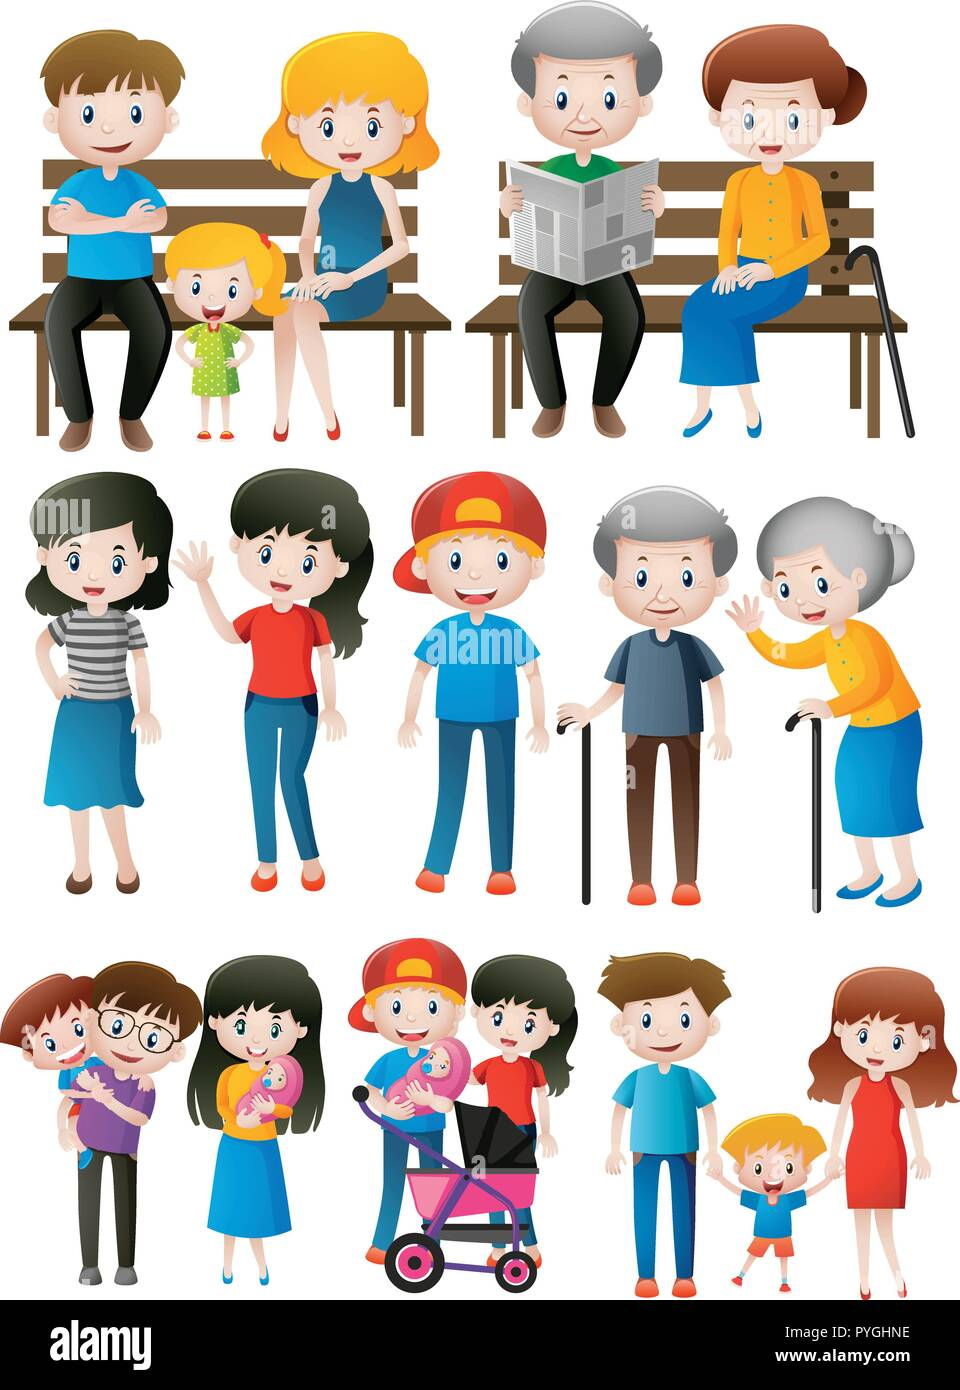 Family members of different generations illustration - Stock Vector